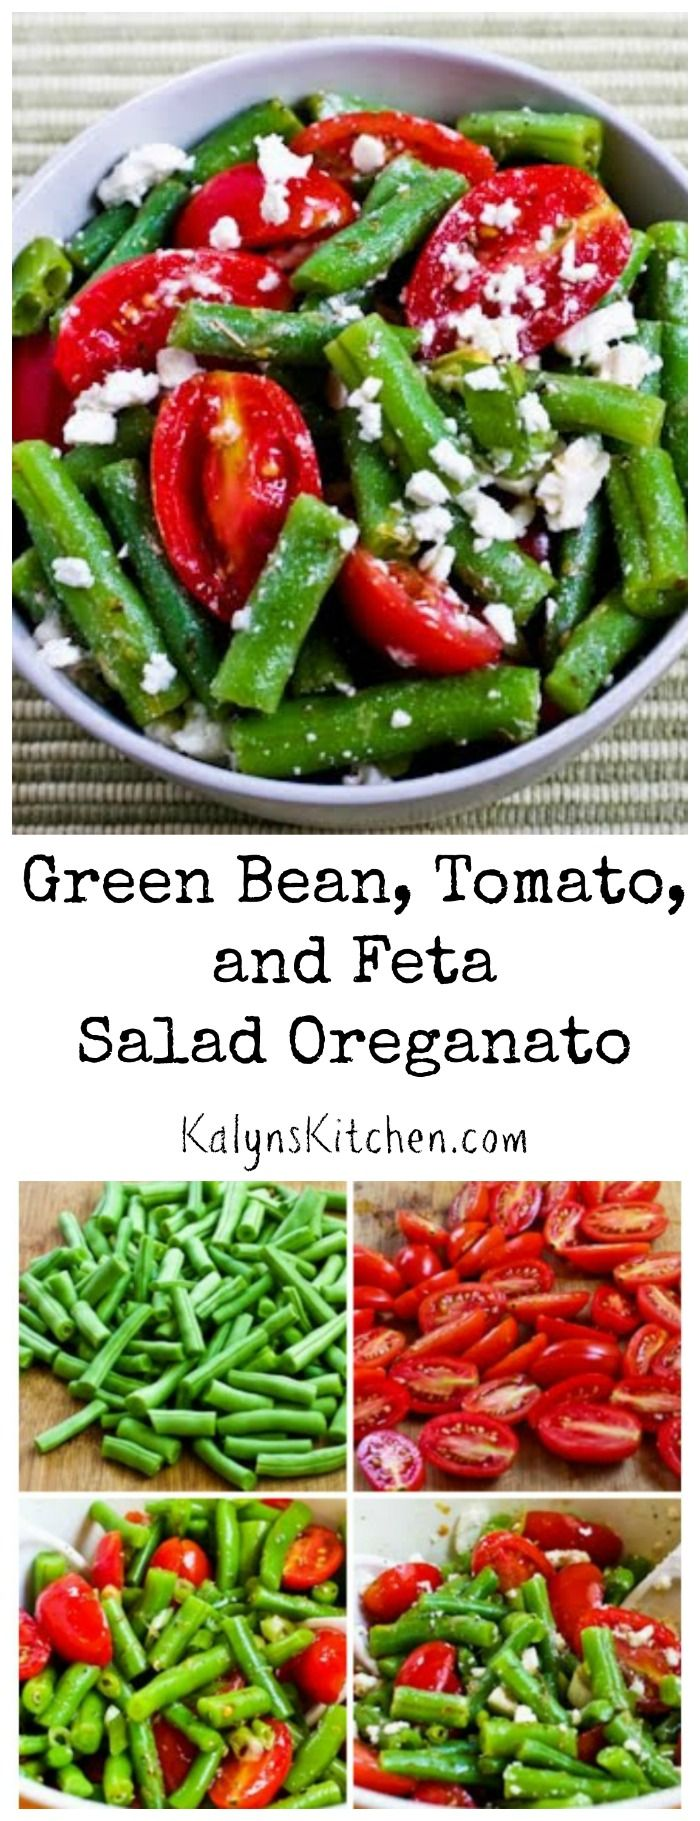 When you have fresh garden beans and tomatoes, you can't beat the flavors in this Green Bean, Tomato, and Feta Salad Oreganato. This will wow your guests at a summer holiday party or pot-luck! #LowCarb #GlutenFree #SouthBeachDiet [from KalynsKitchen.com]